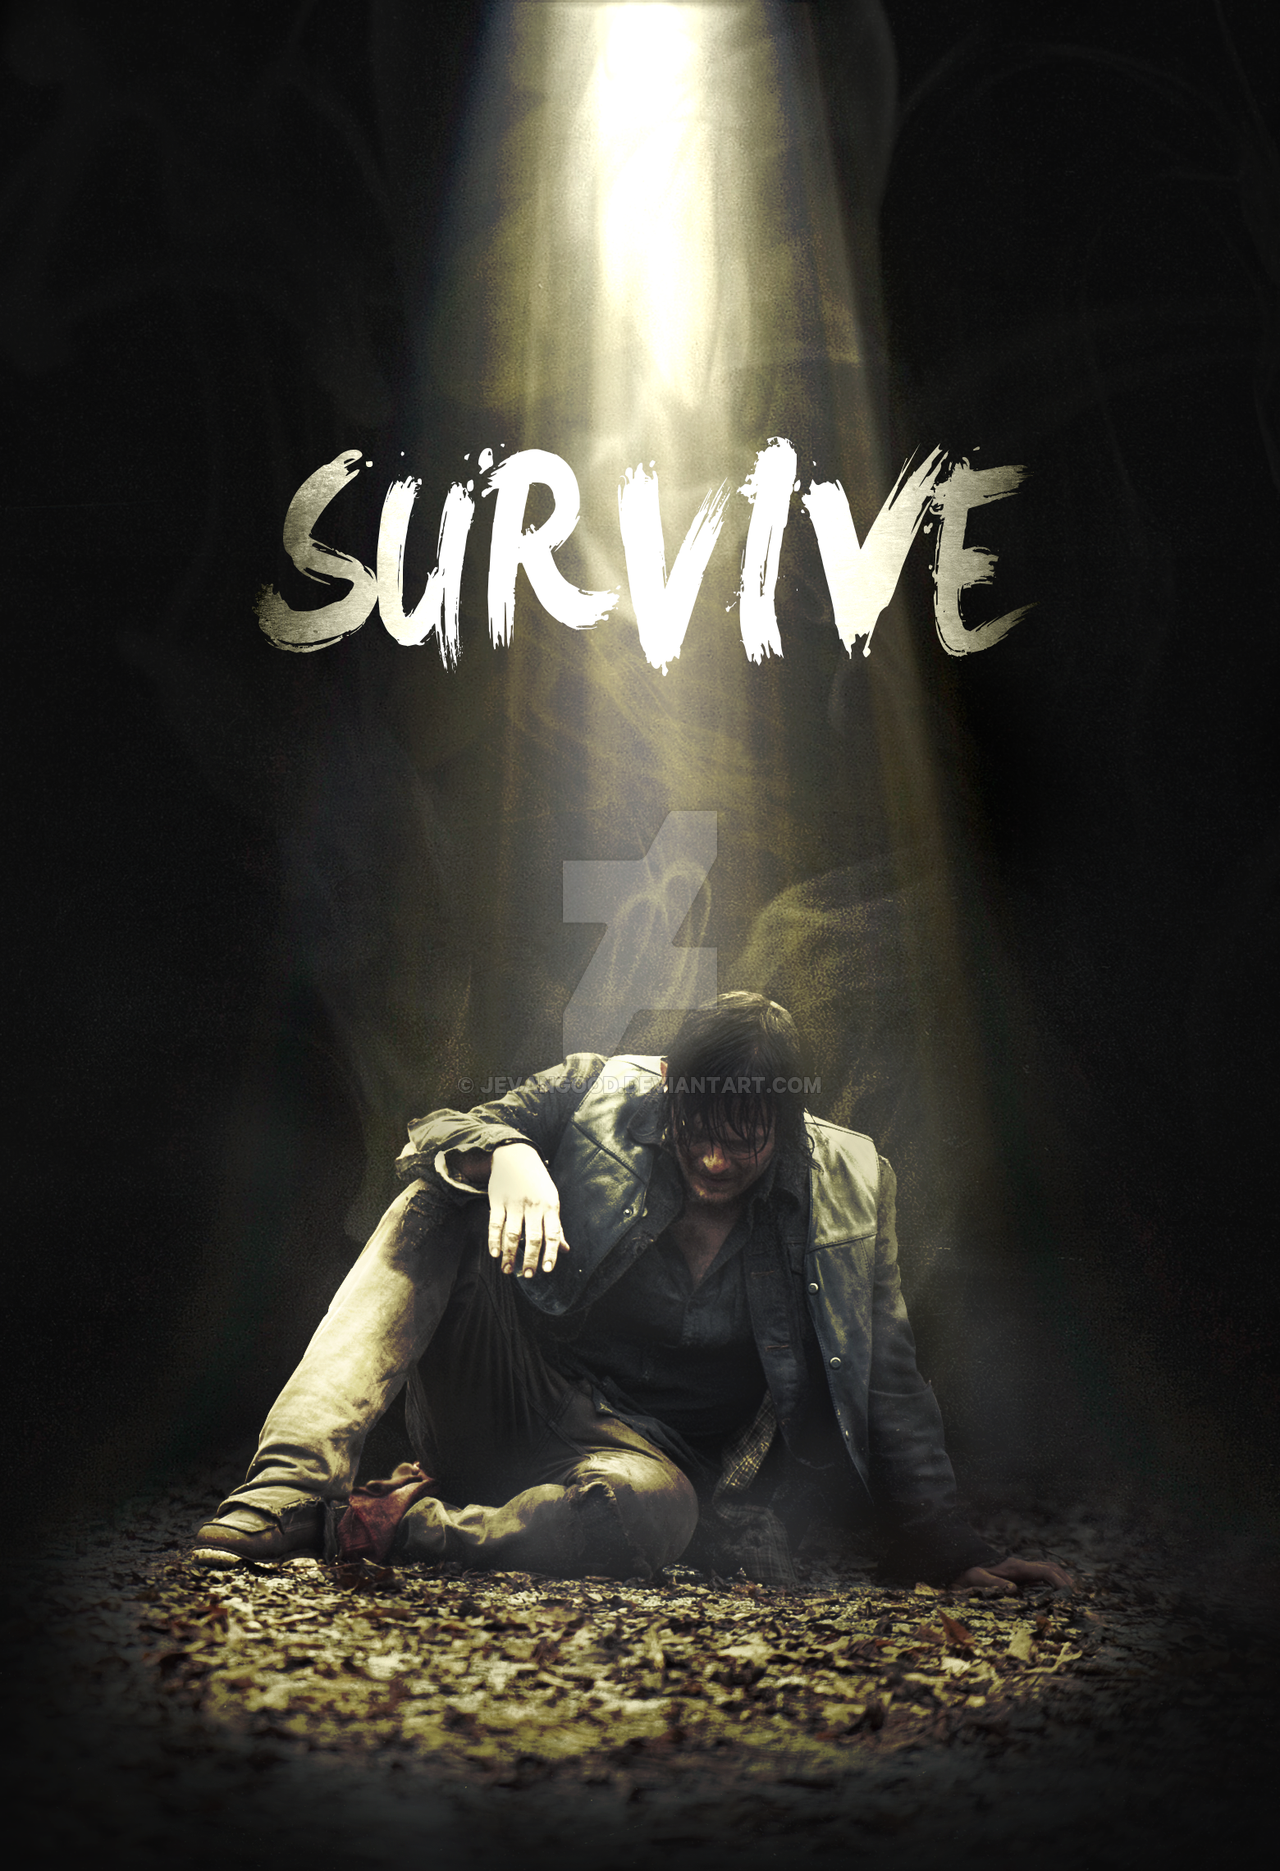 The Walking Dead Season 5 Daryl Poster By Jevangood The Walking